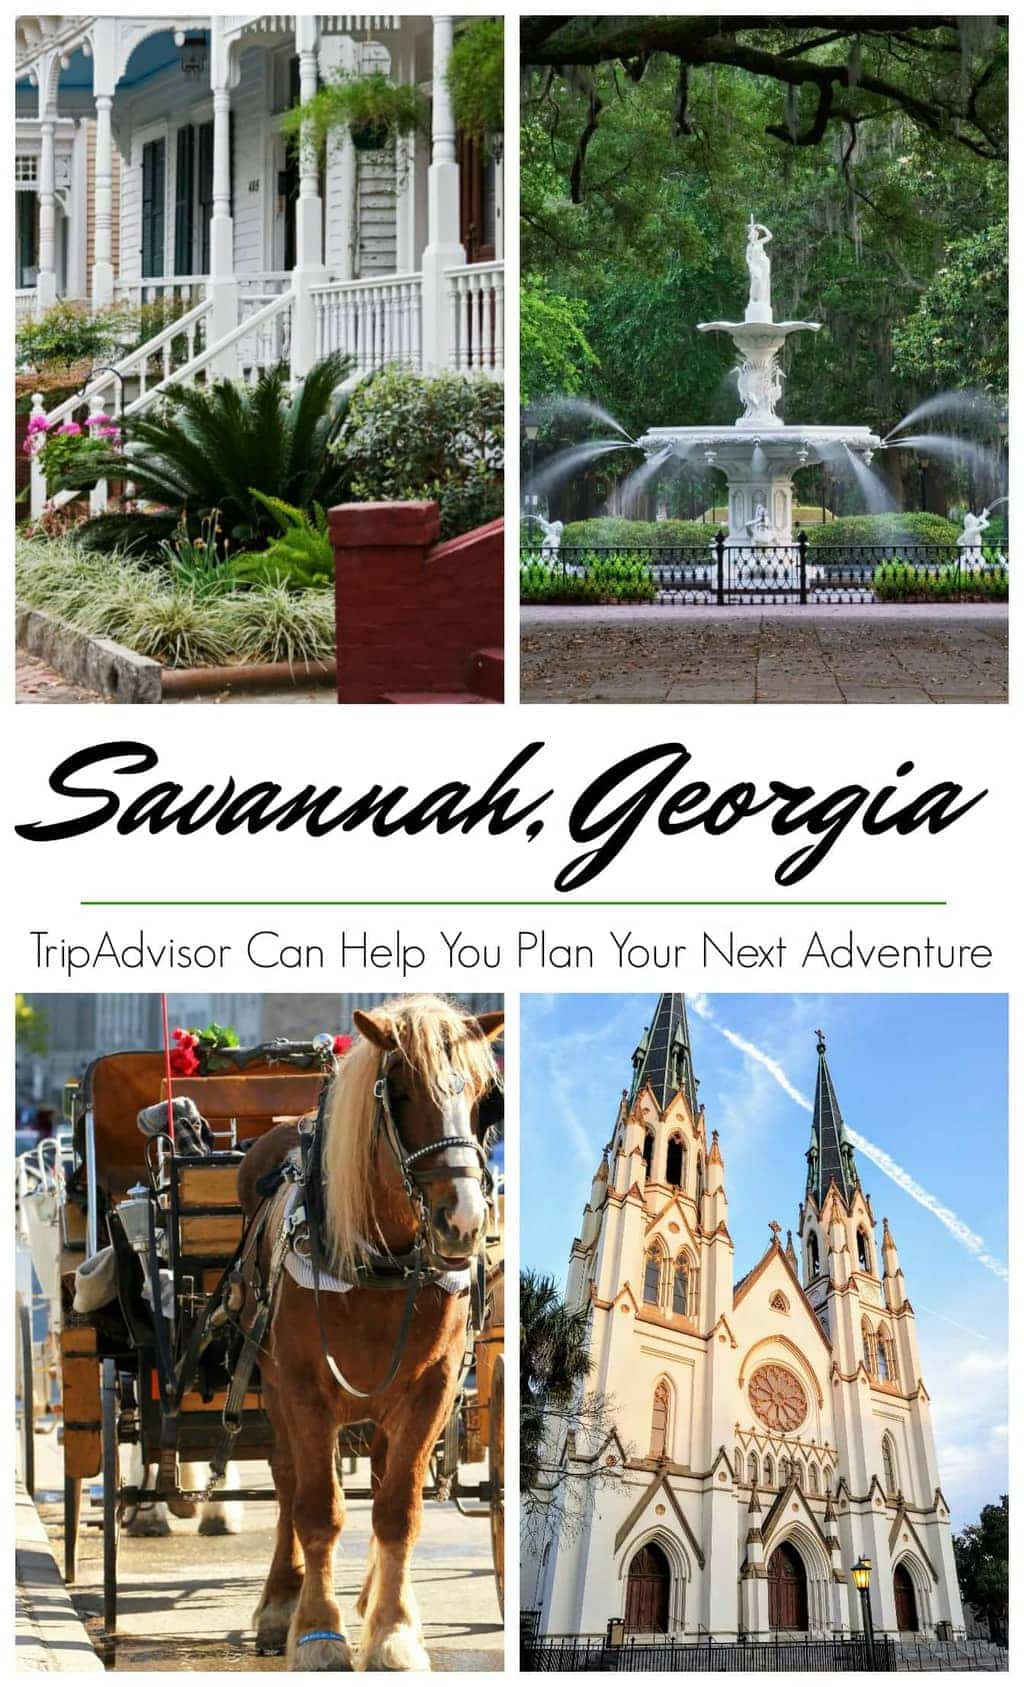 #ad When I think of a romantic destination, I think of Savannah, GA. It is such a beautiful city and a place to spend a romantic weekend getaway. With the help of @TripAdvisor you can discover new and exciting things to do #TripAdvisor